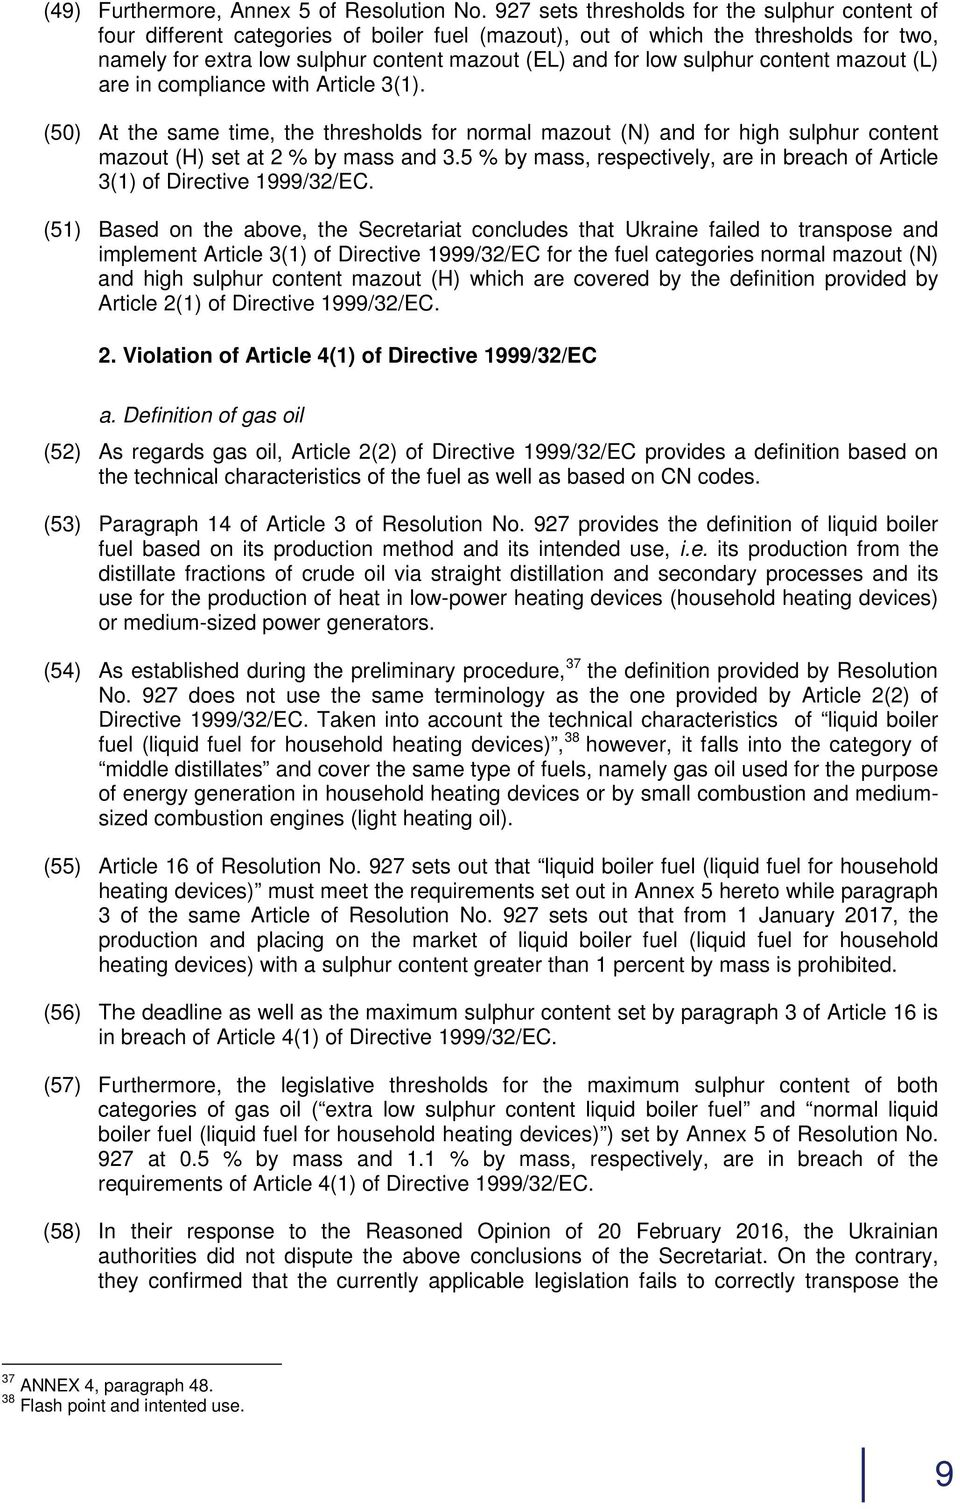 sulphur content mazout (L) are in compliance with Article 3(1). (50) At the same time, the thresholds for normal mazout (N) and for high sulphur content mazout (H) set at 2 % by mass and 3.